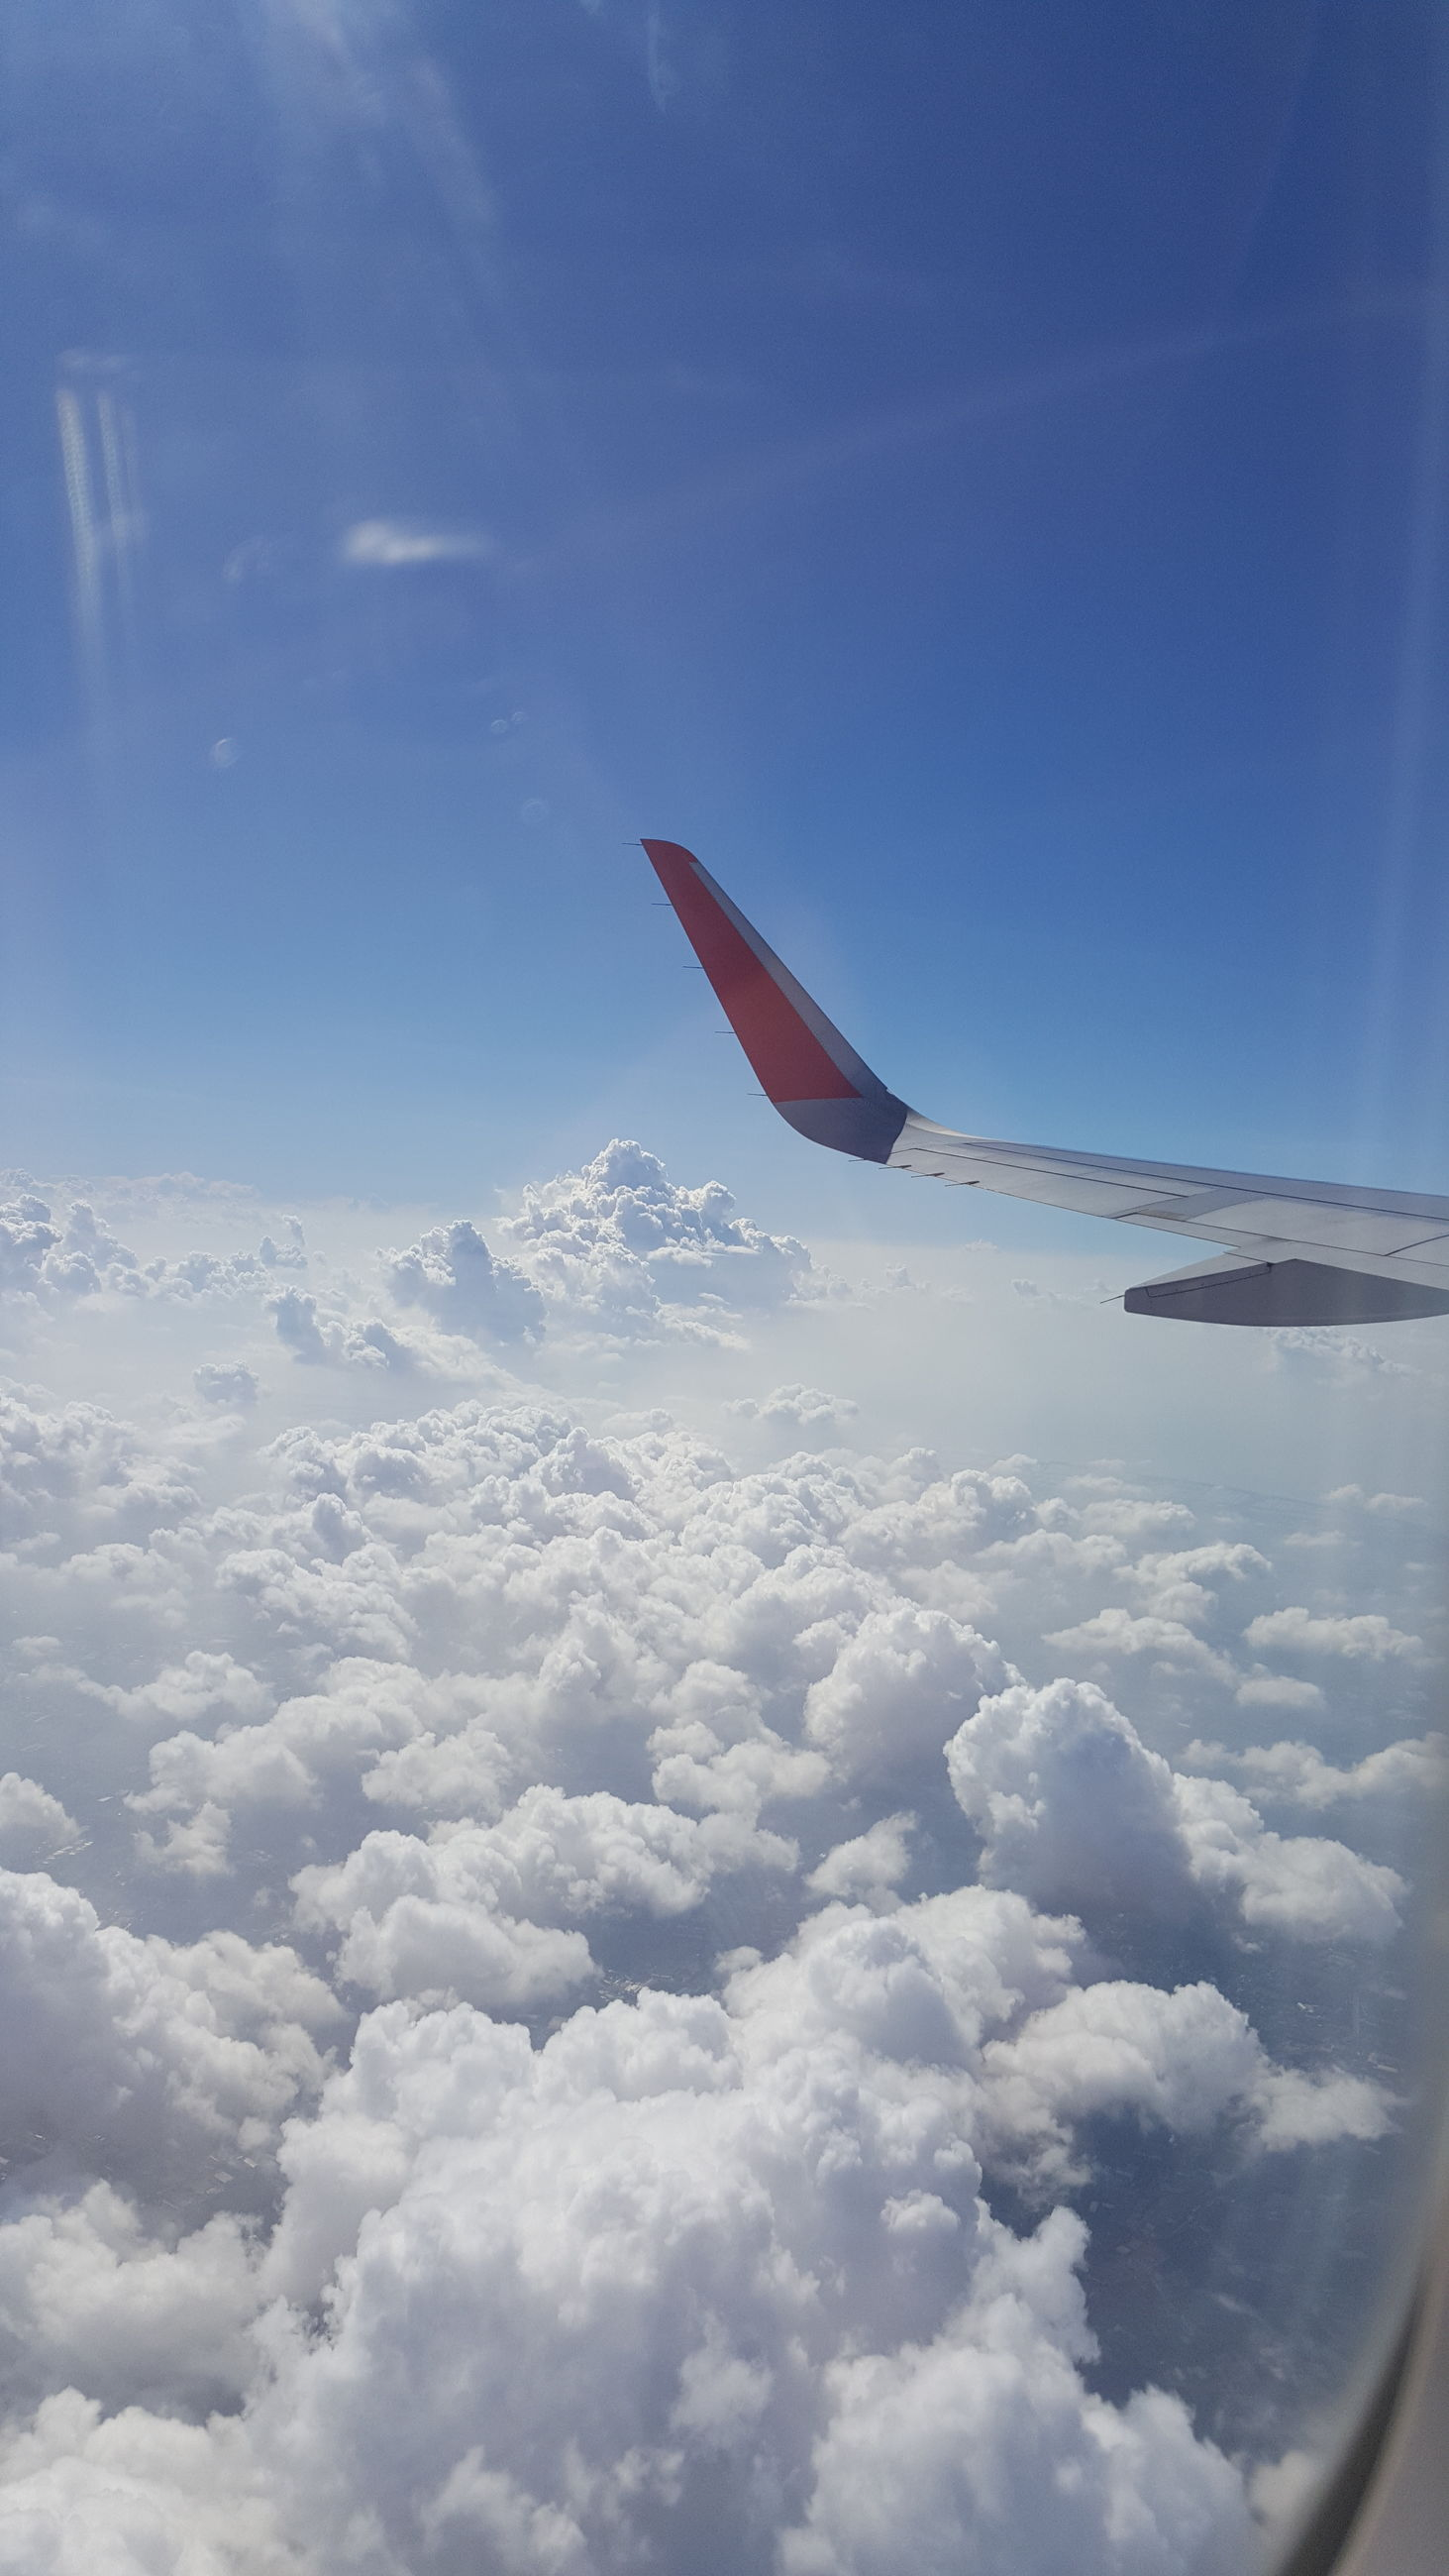 flying, transportation, mid-air, mode of transport, sea, blue, air vehicle, aircraft wing, airplane, travel, on the move, nature, sky, part of, water, day, motion, beauty in nature, cropped, outdoors